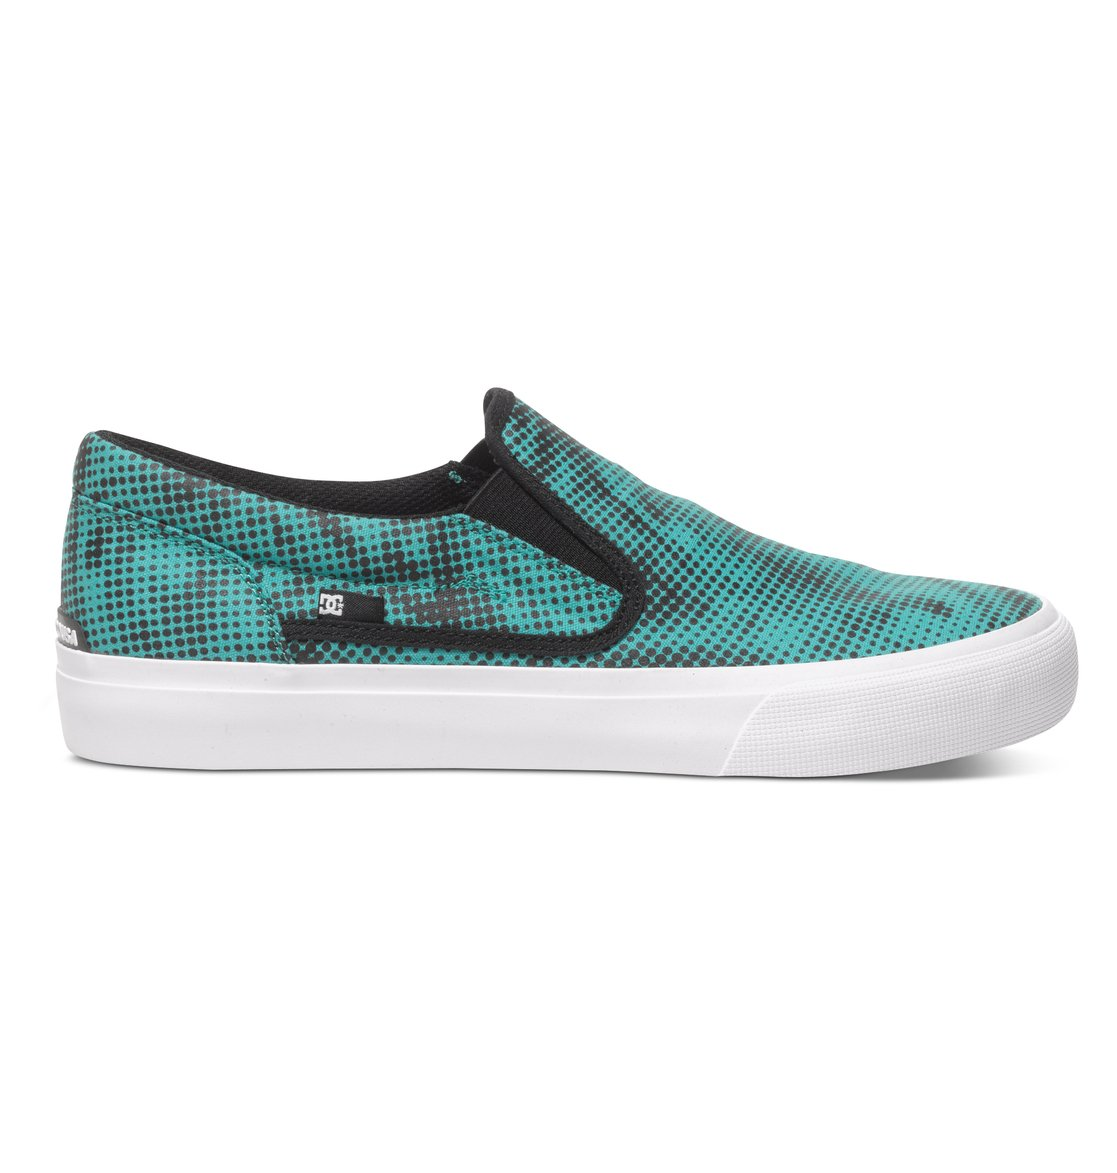 dc shoes s trase sp slip on shoes adys300185 ebay